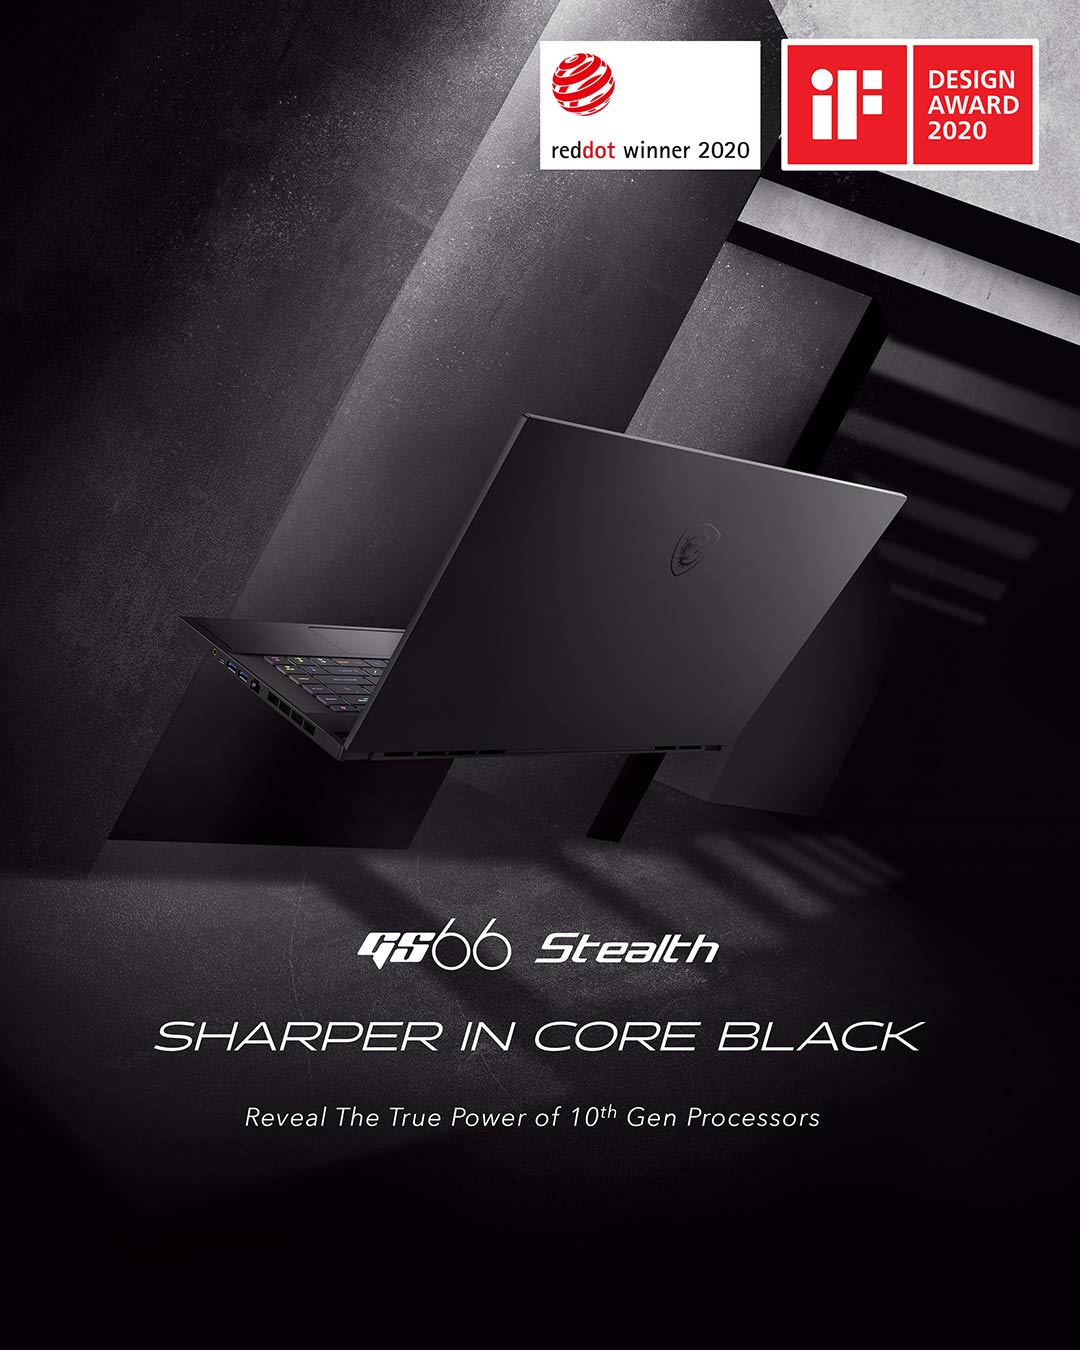 GS66 STEALTH SHARPER IN CORE BLACK